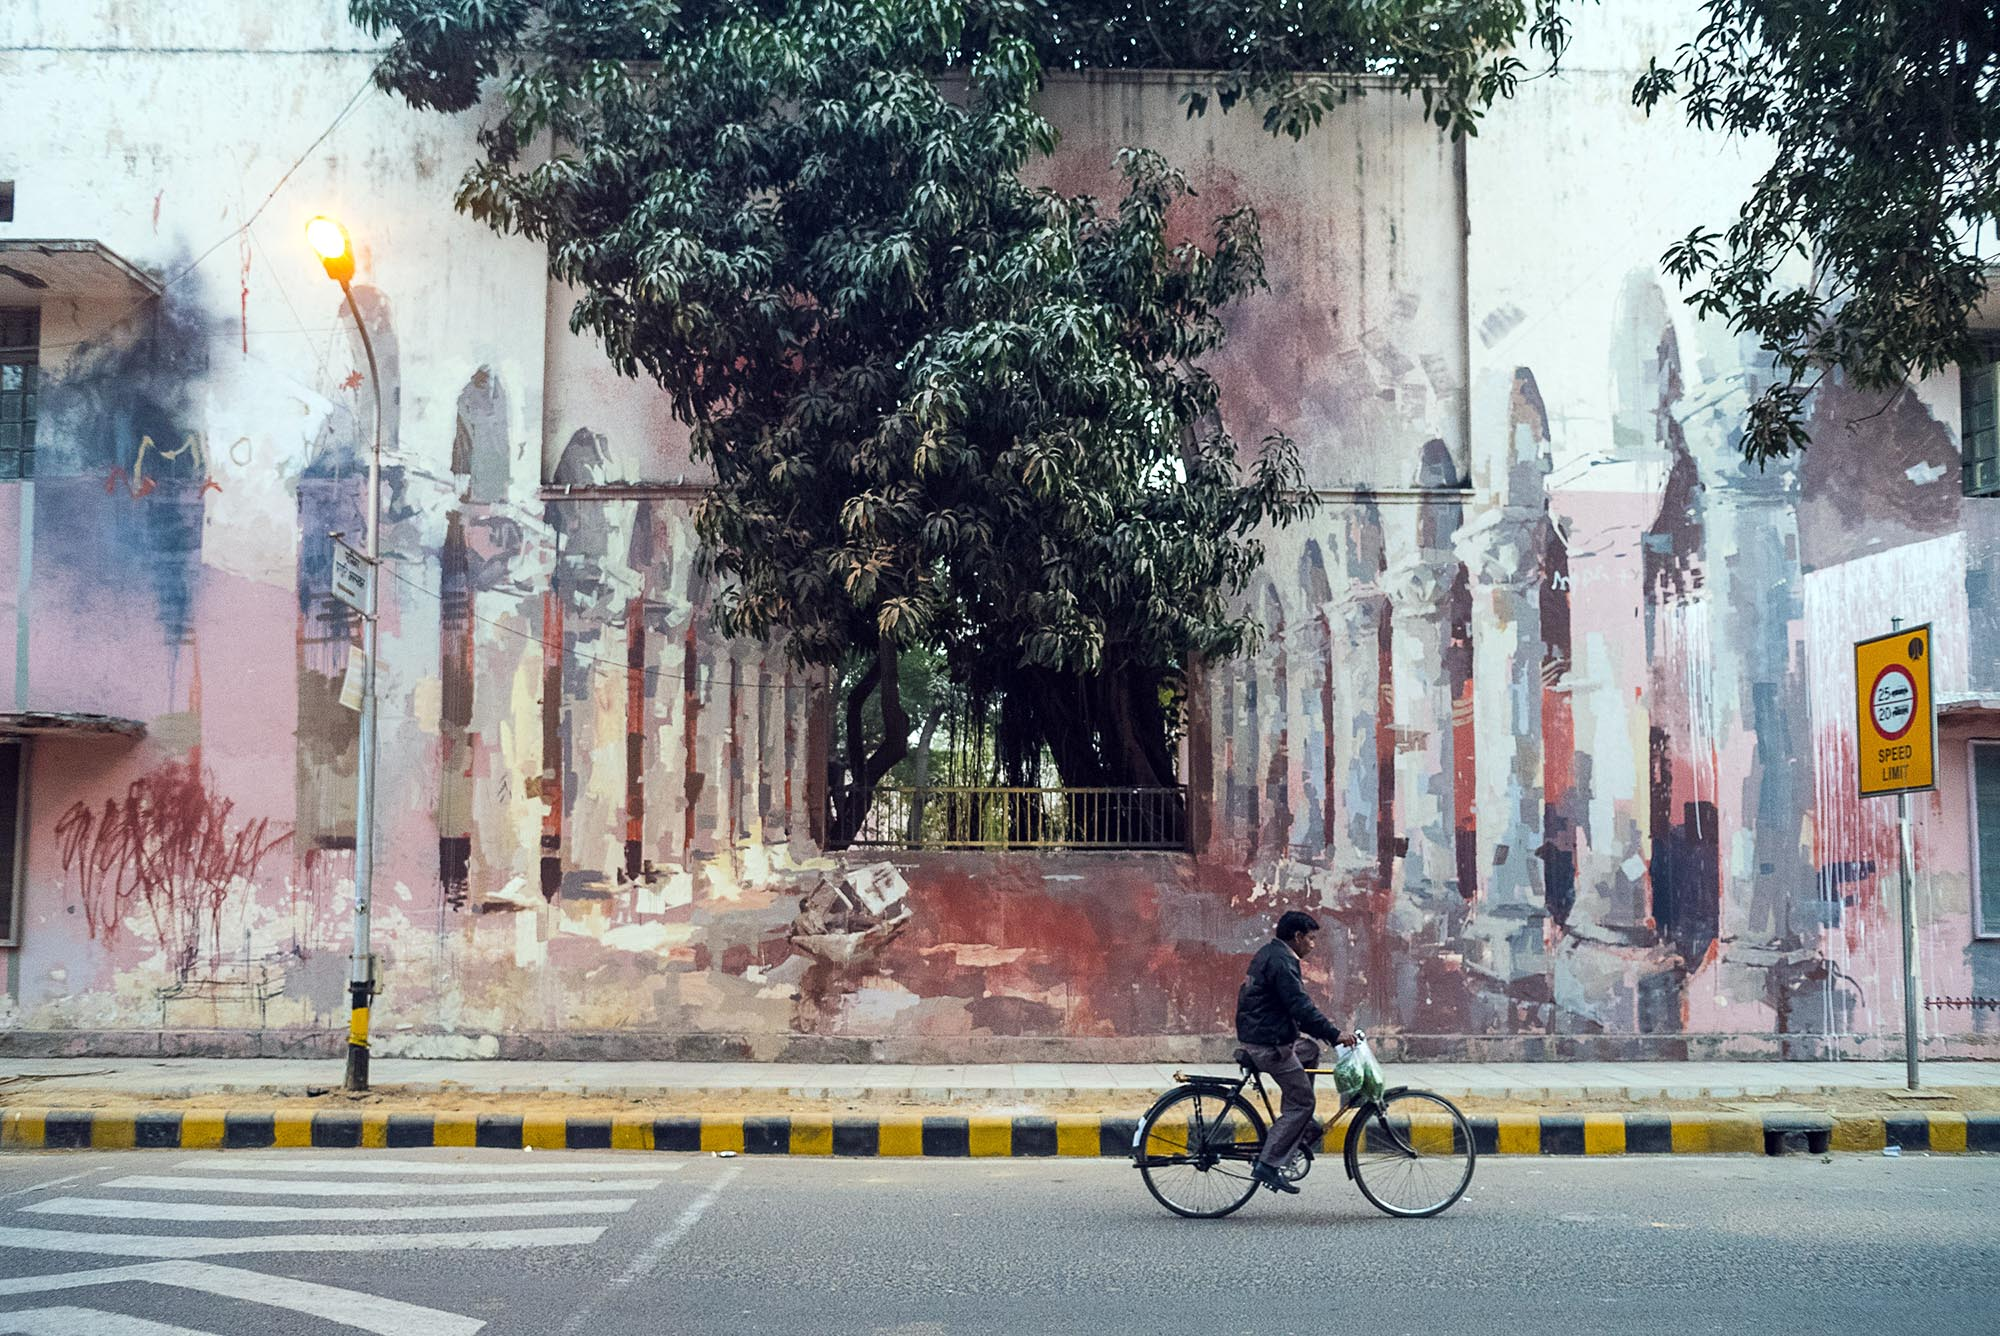 201602009_lodhi art district_photo by naman saraiya.jpg (5 of 6)